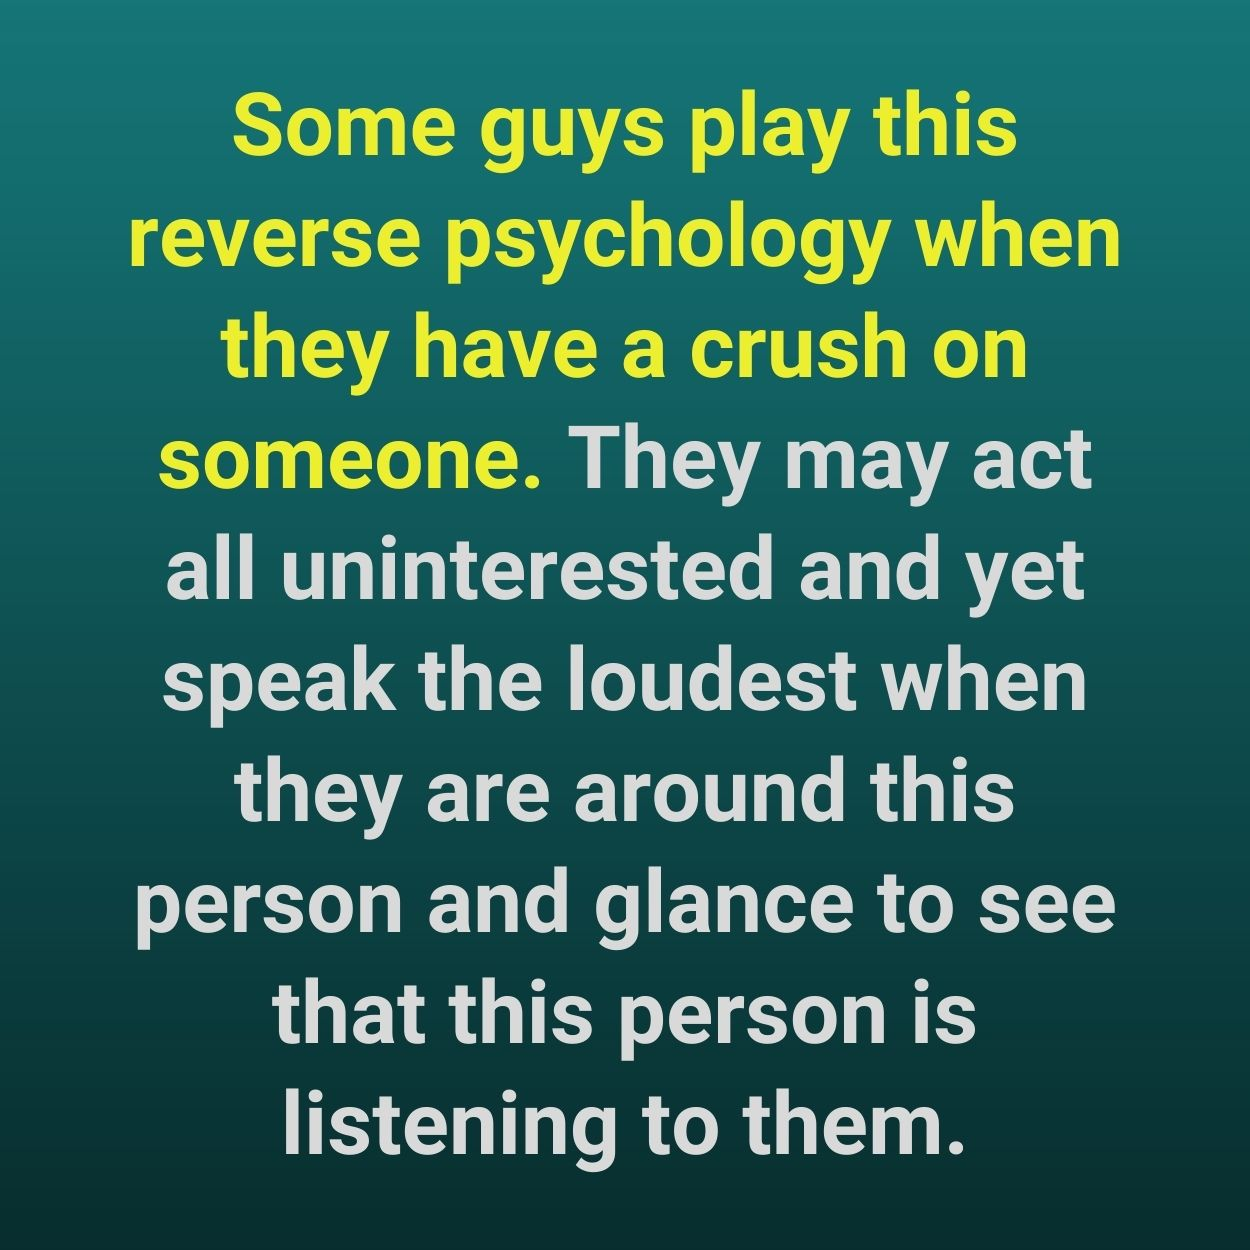 Some guys play this reverse psychology when they have a crush on someone. They may act all uninterested and yet speak the loudest when they are around this person and glance to see that this person is listening to them.